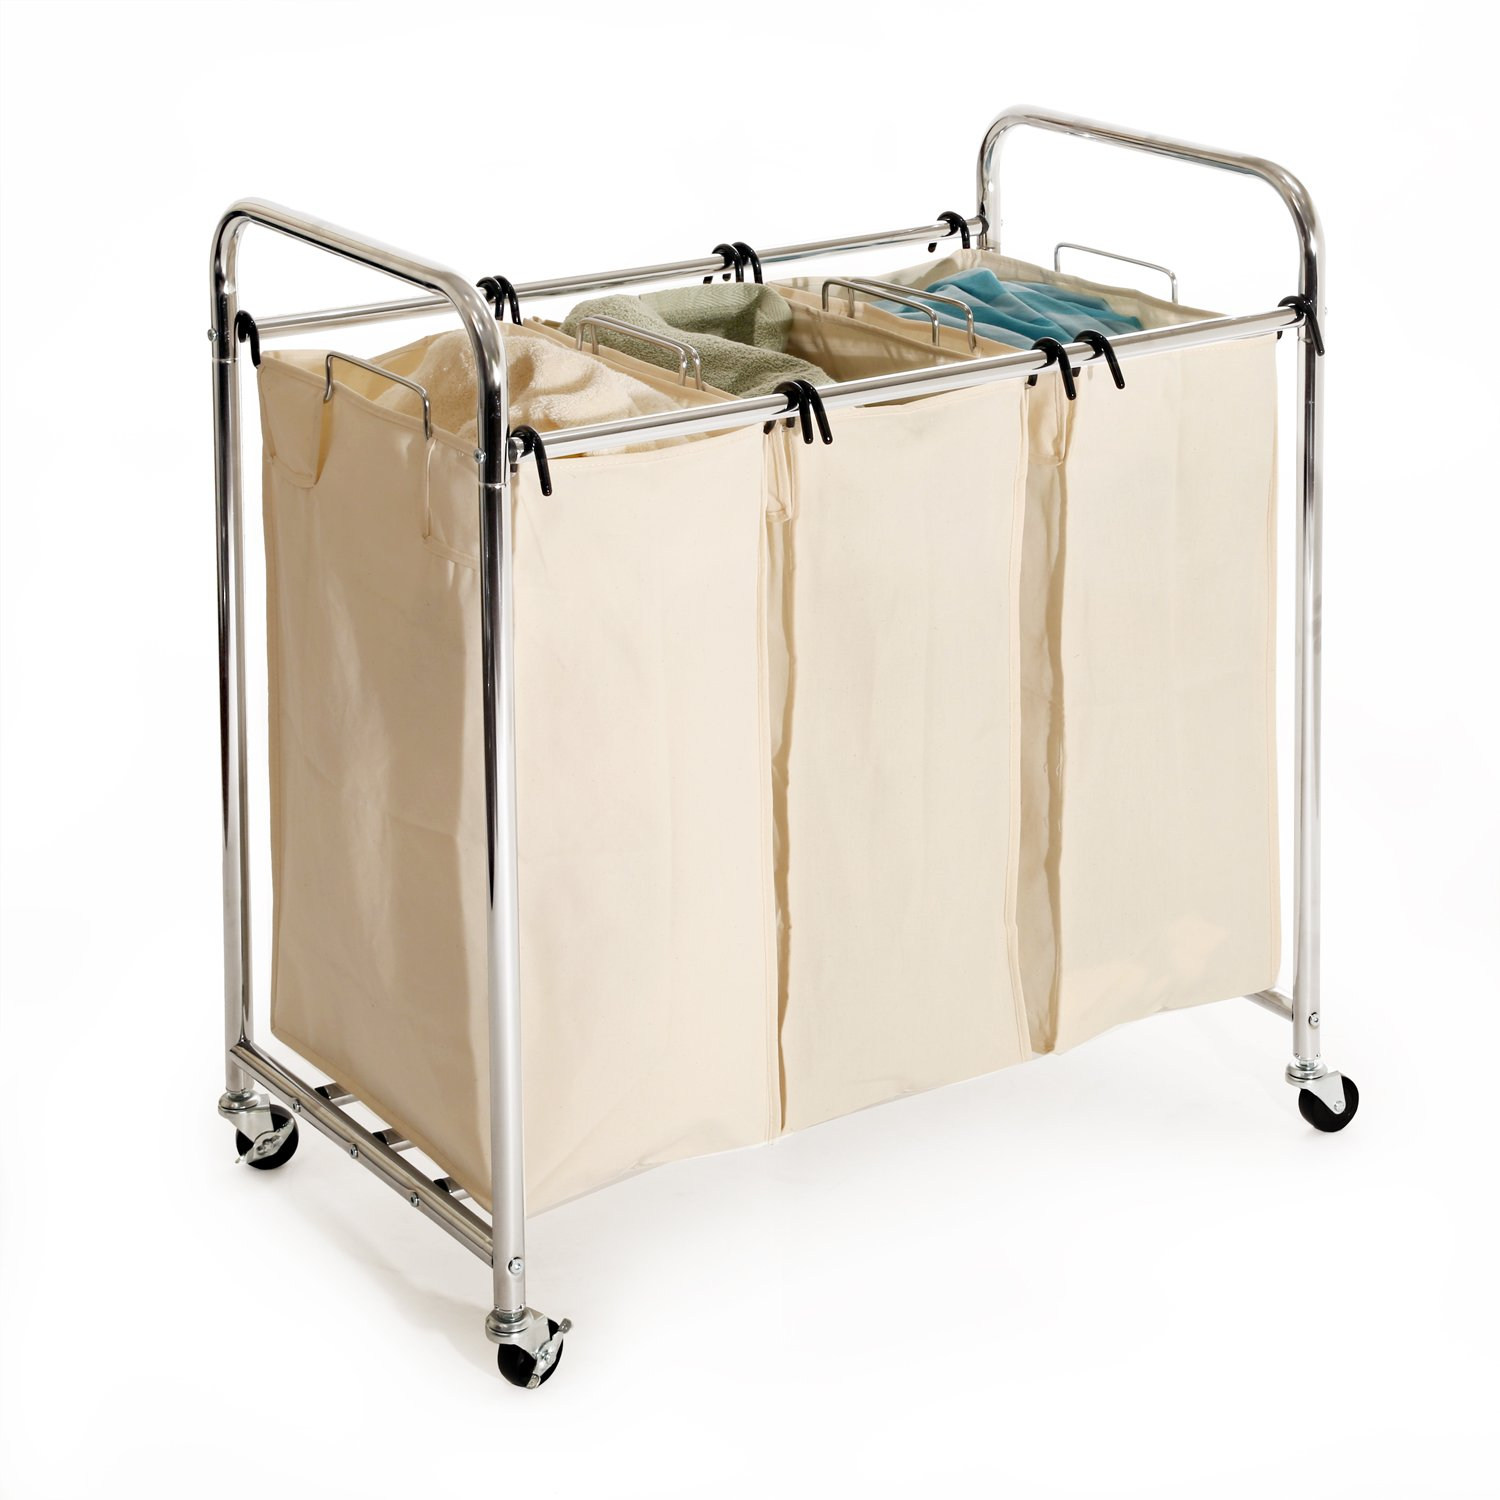 Canvas Hamper Bags Best Heavy Duty Laundry Sorter Cart 3 Bag Or 4 Bag Hampers